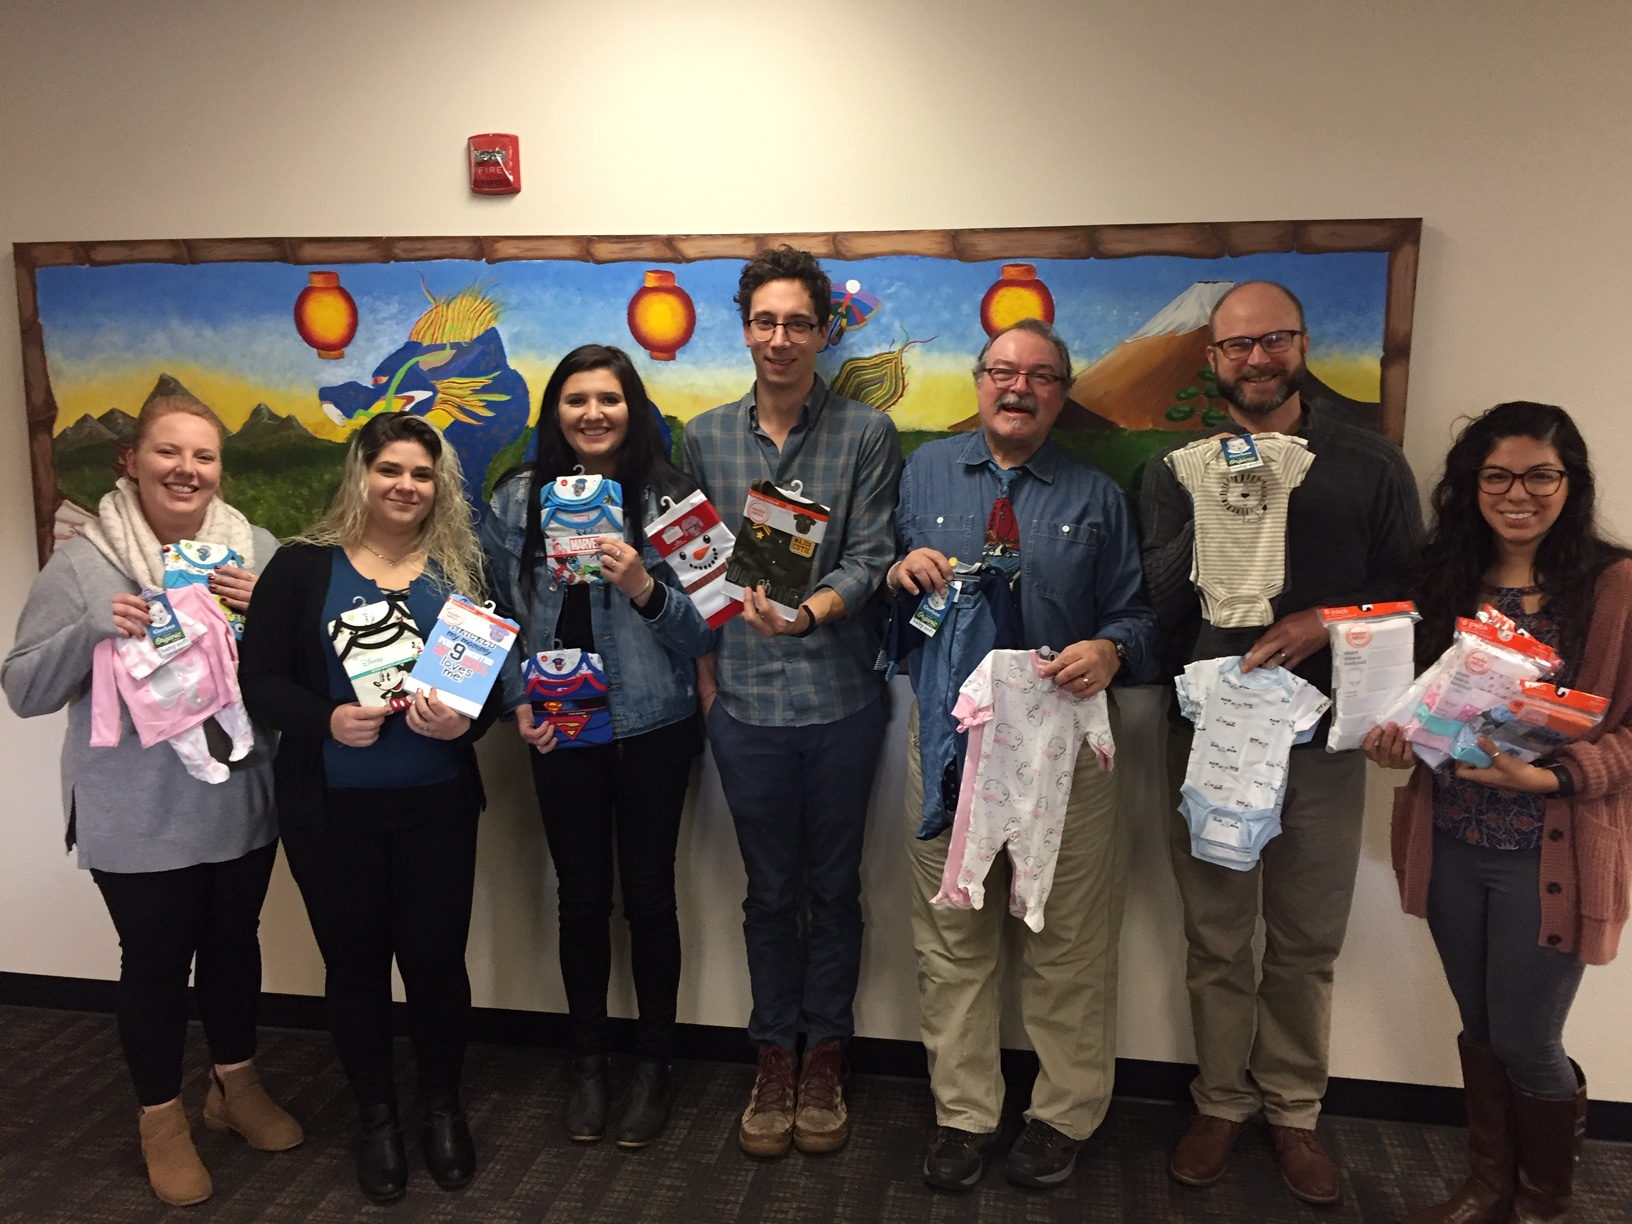 Riverfront School and Career Center staff show off a handful of the newborn baby clothes purchased with funding support from OCCU.